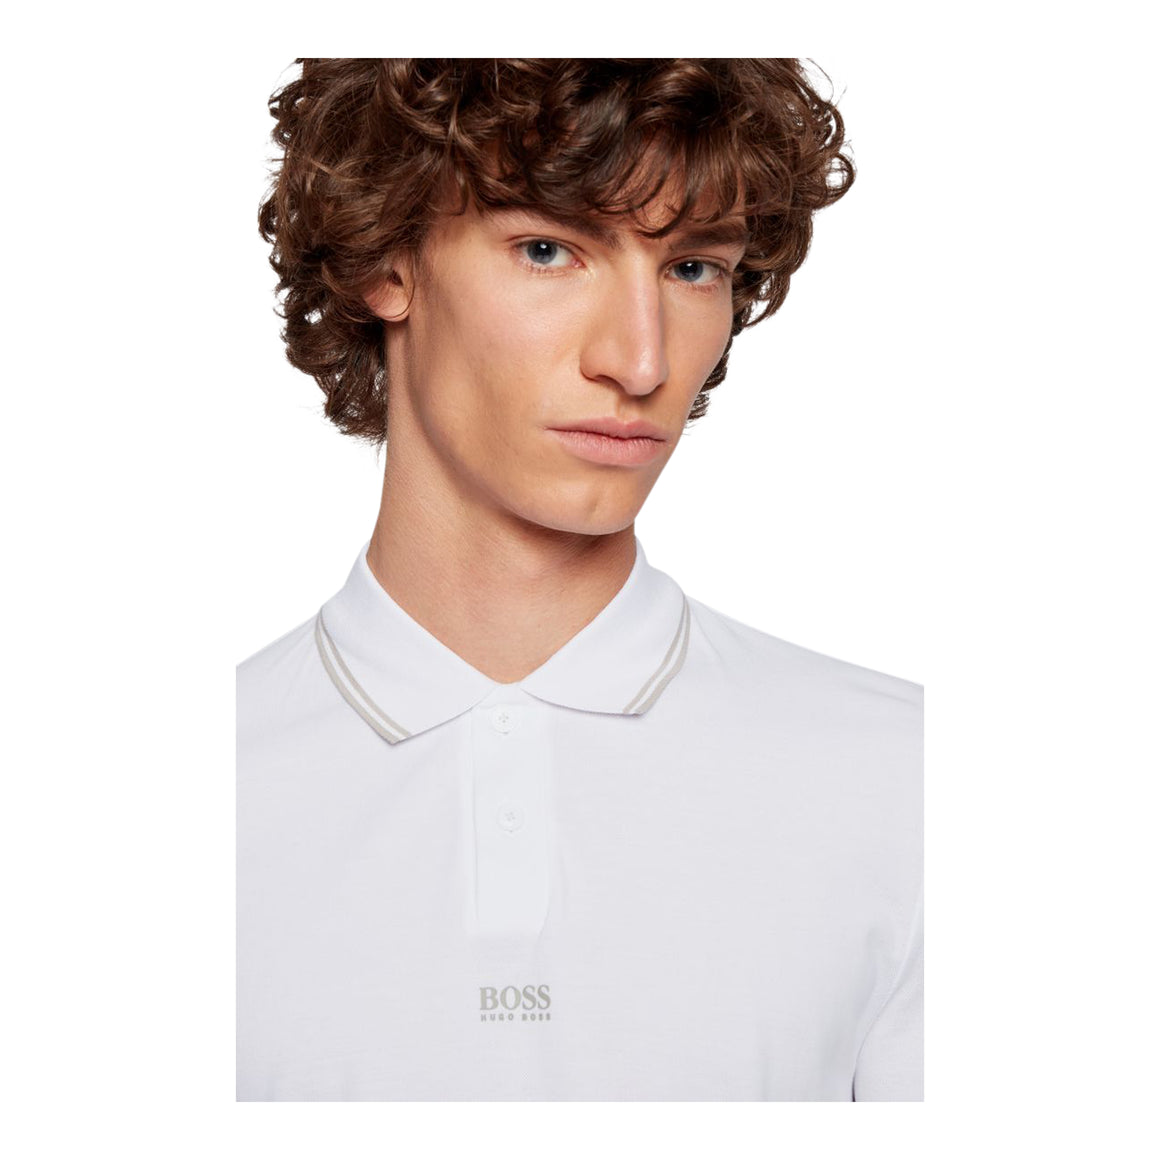 Pchup Tipped Polo for Men in White